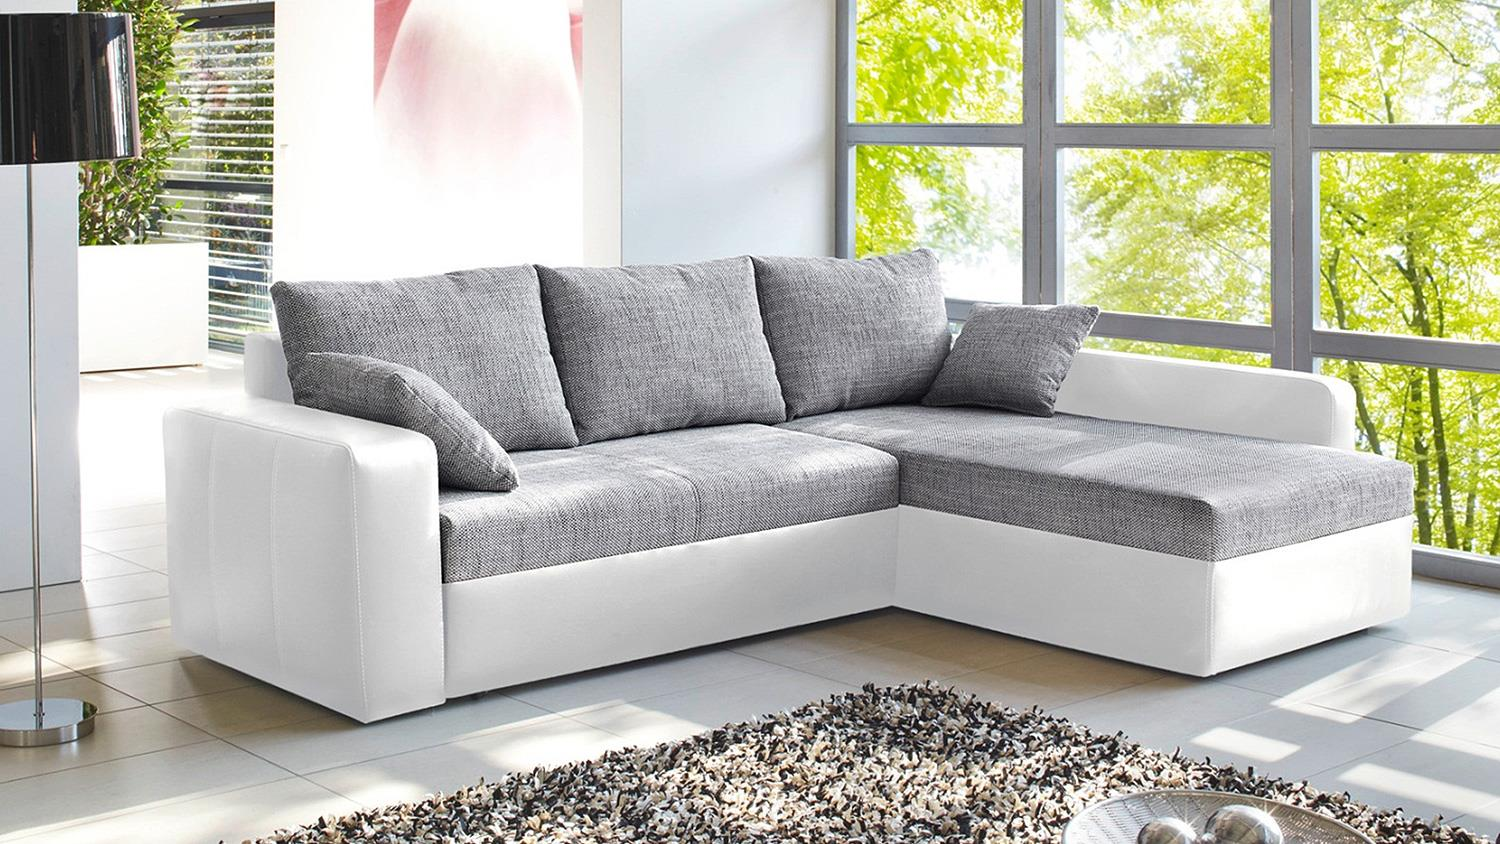 Ecksofa viper sofa in wei und grau mit bettfunktion for Sofa mit bettfunktion